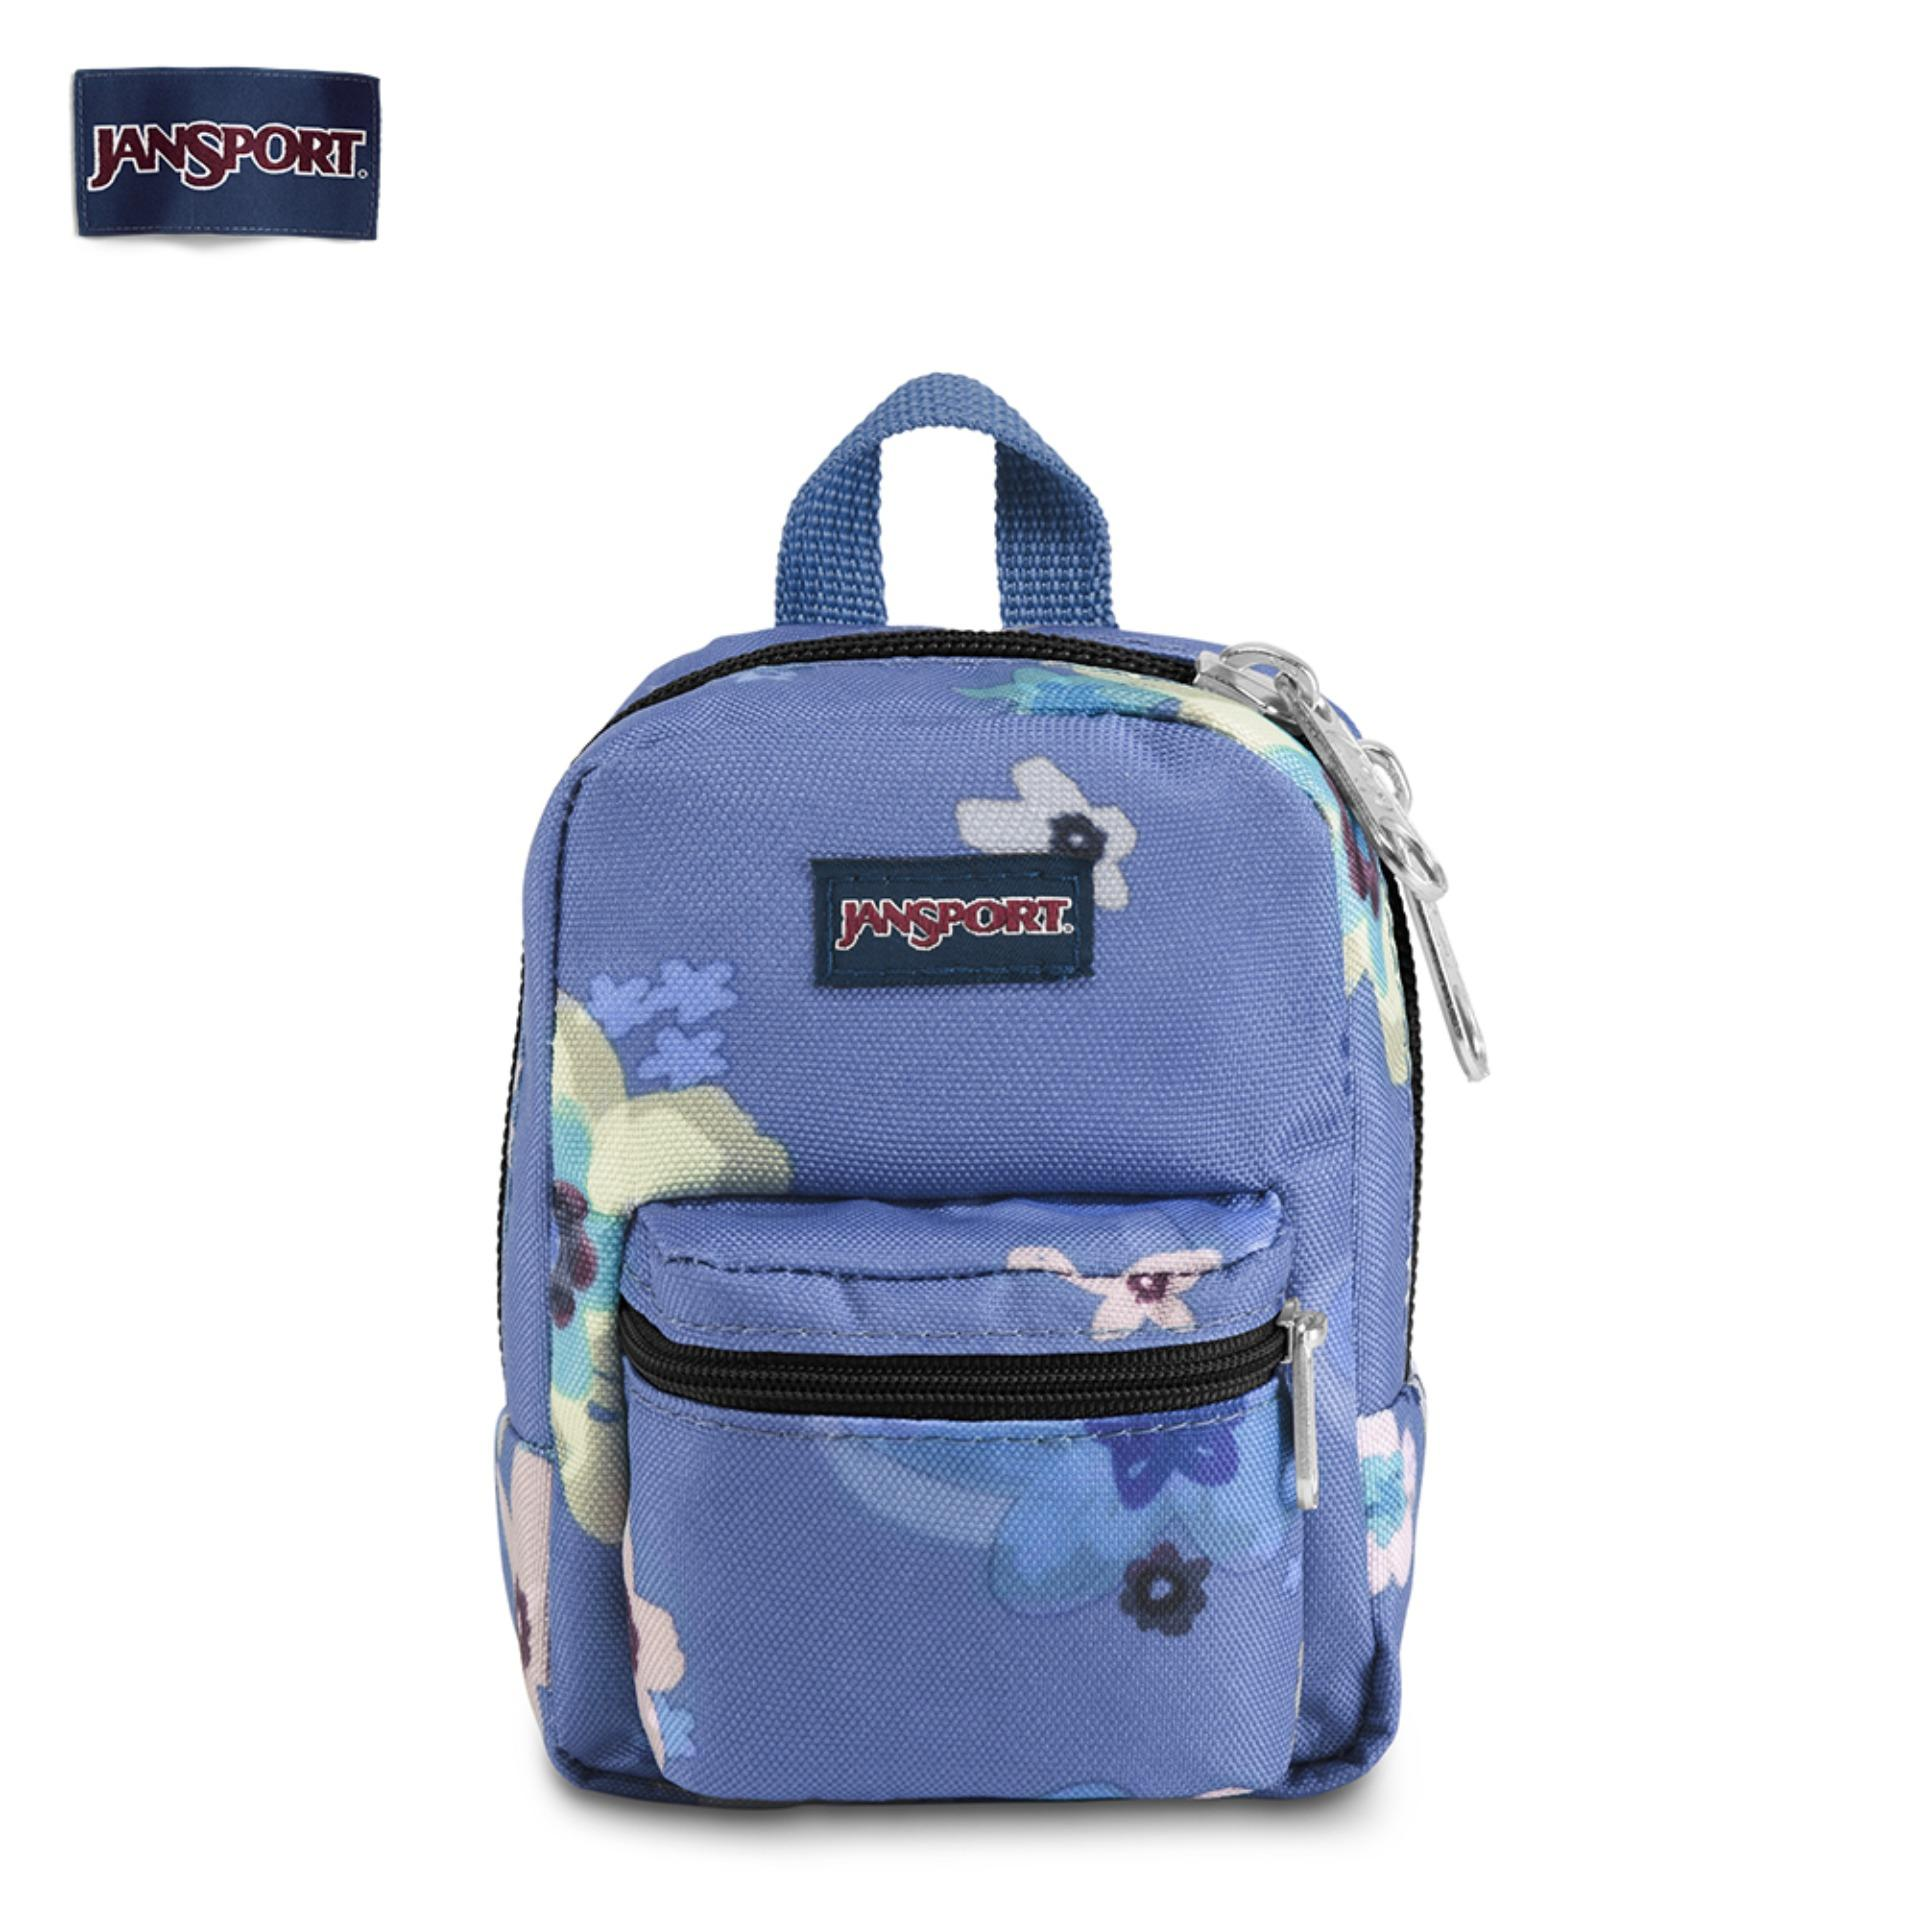 8d4157bae53 JanSport Philippines  JanSport price list - JanSport Bags ...